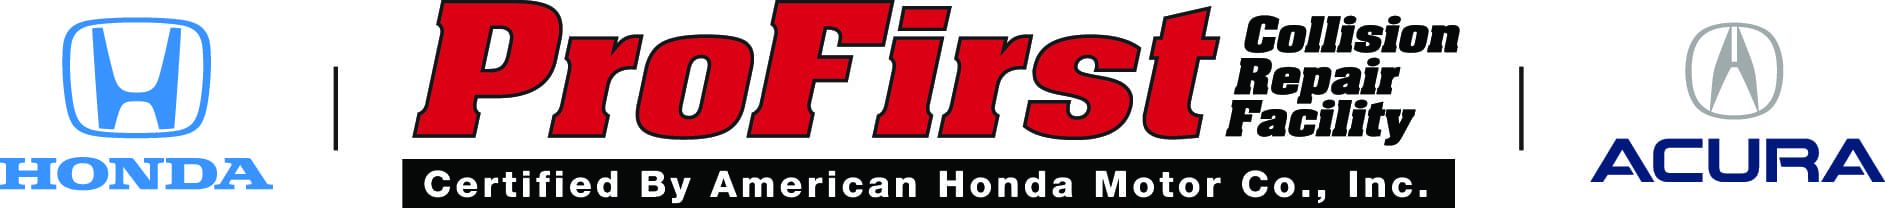 Honda ProFirst Collision Repair Facility. Certified by American Honda Motor Co., Inc.